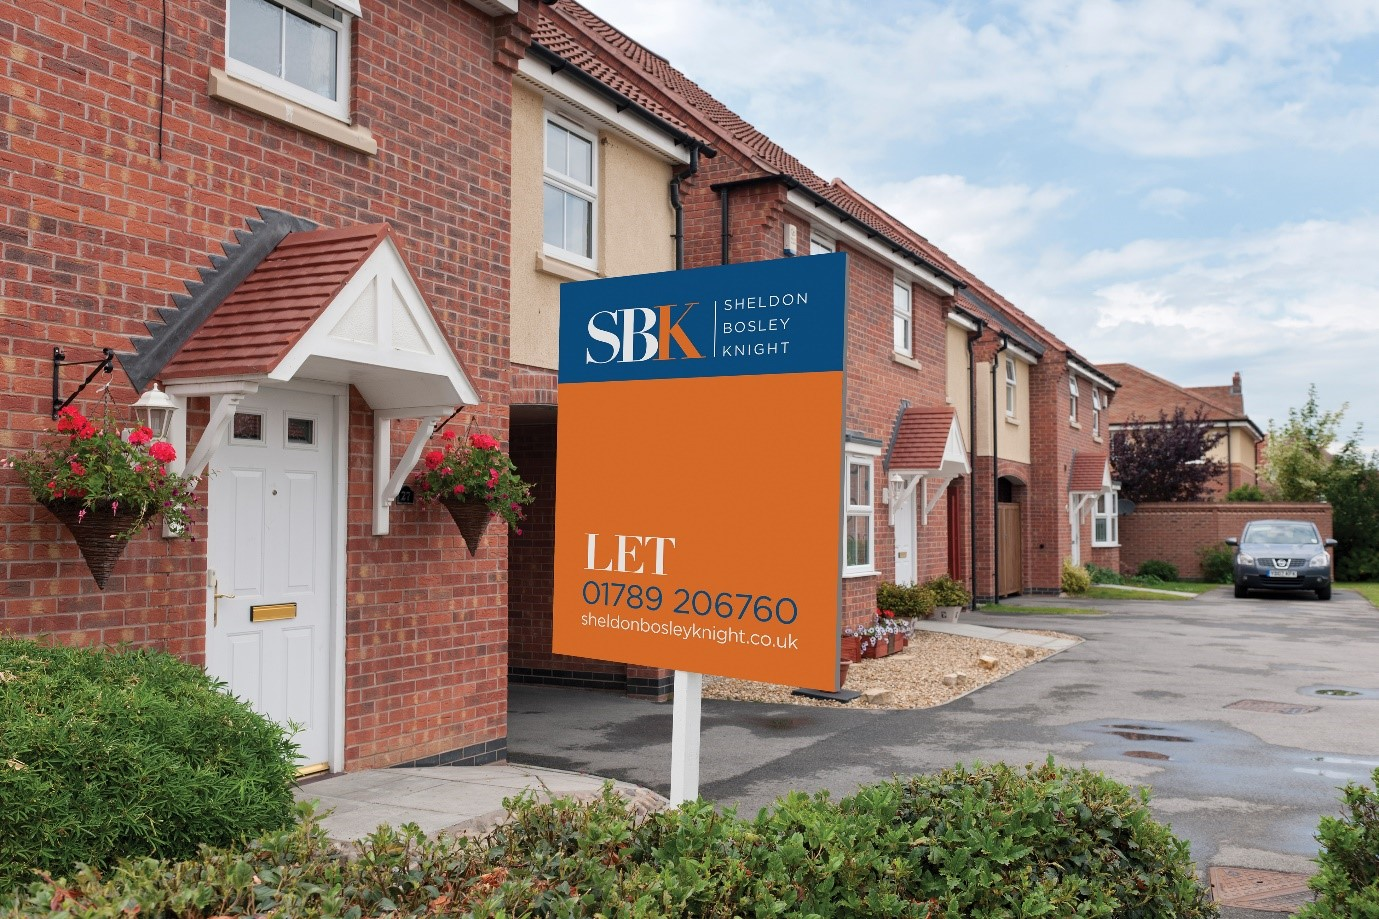 SBK property To Let